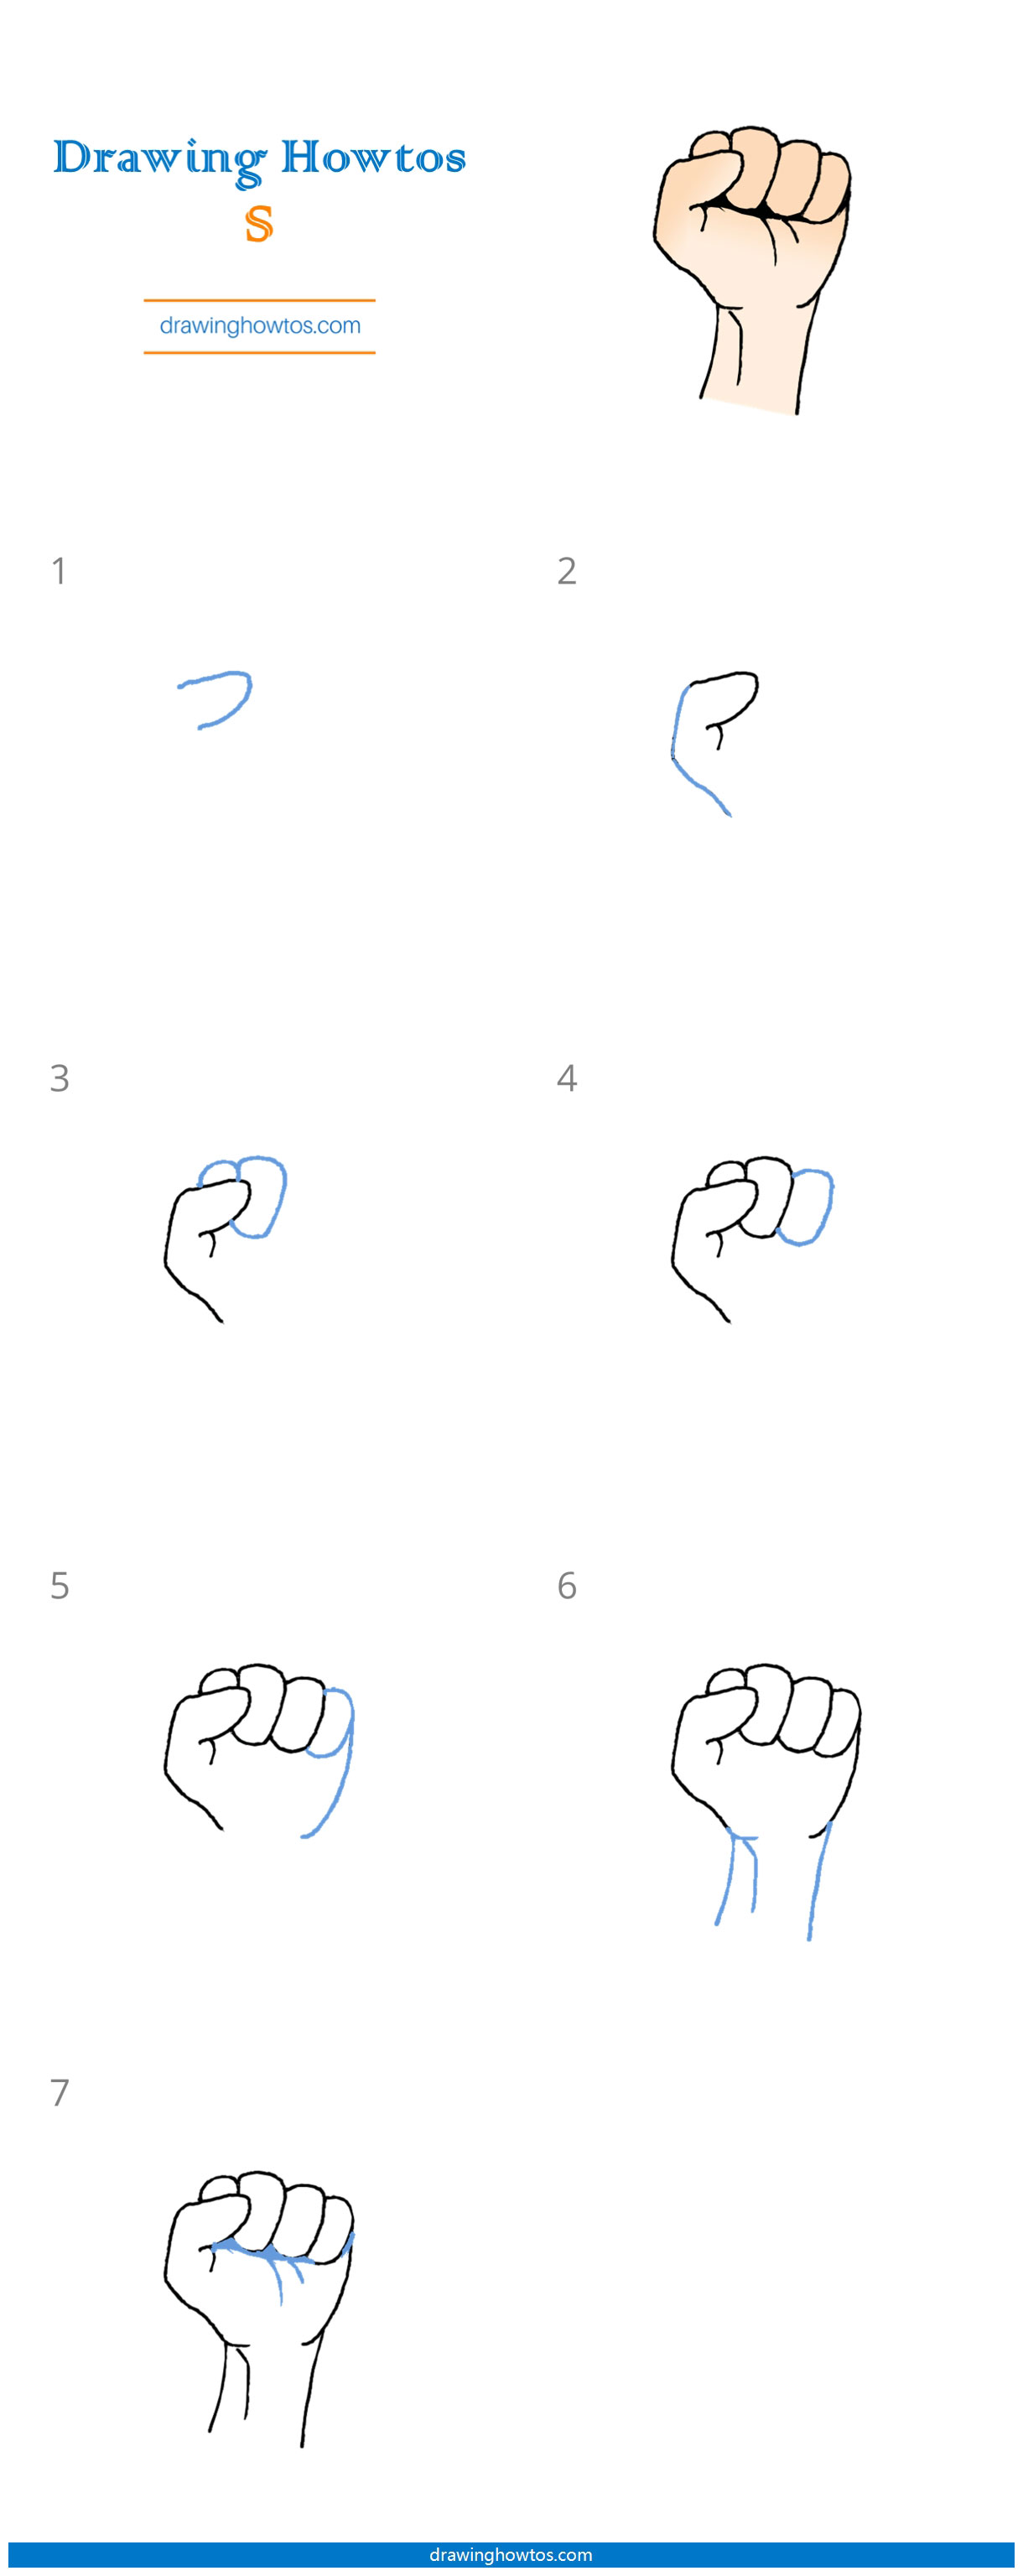 How To Draw A Fist Step By Step Easy Drawing Guides Drawing Howtos